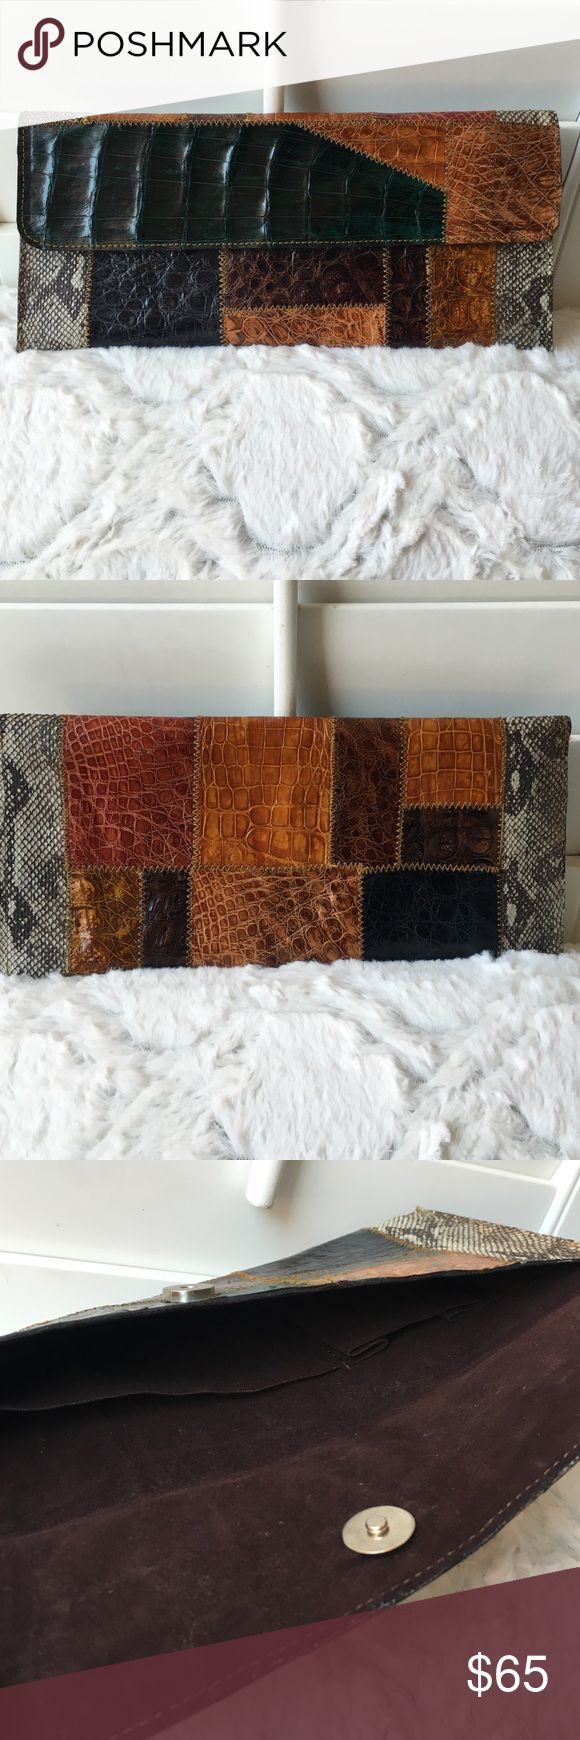 Genuine snake alligator envelope clutch Authentic. Genuine. Artisan. Boutique from travels. Gently used once. Gorgeous Multi colored patchwork design. Interior is skinny but had 2 small pockets. Rectangular shape. Pristine condition. Variety of colors forest green Browns neutral colors. Fall fashion. Bags Clutches & Wristlets